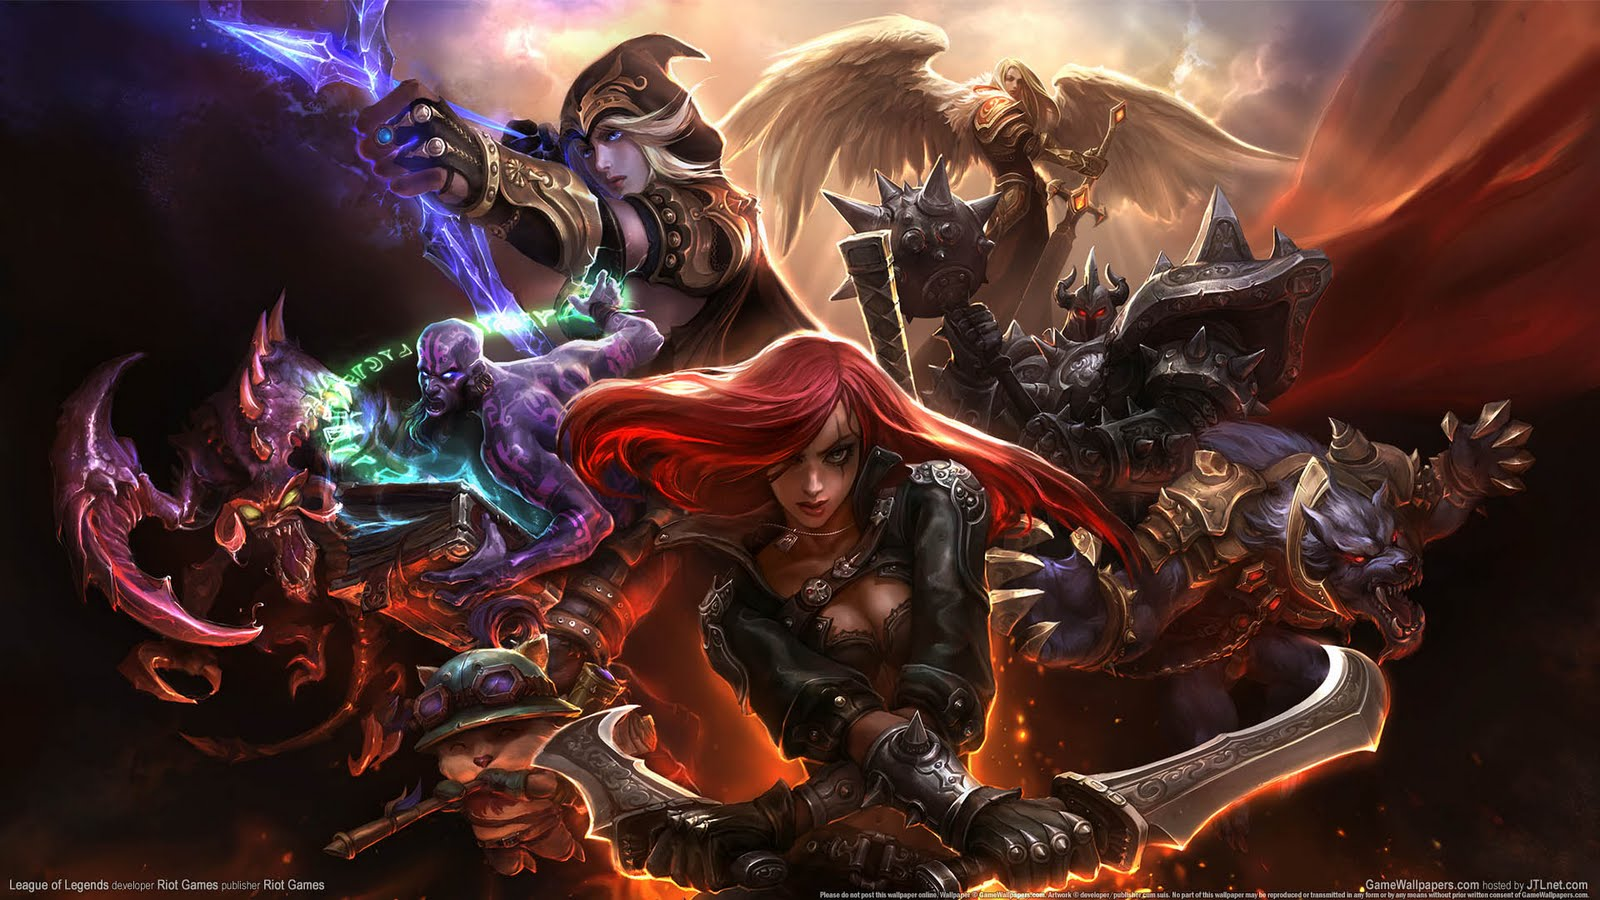 http://3.bp.blogspot.com/-LErW4EFDufY/TlSk5c5eW2I/AAAAAAAAAGI/k04mnxeTijI/s1600/wallpaper_league_of_legends_02_1920x1080.jpg